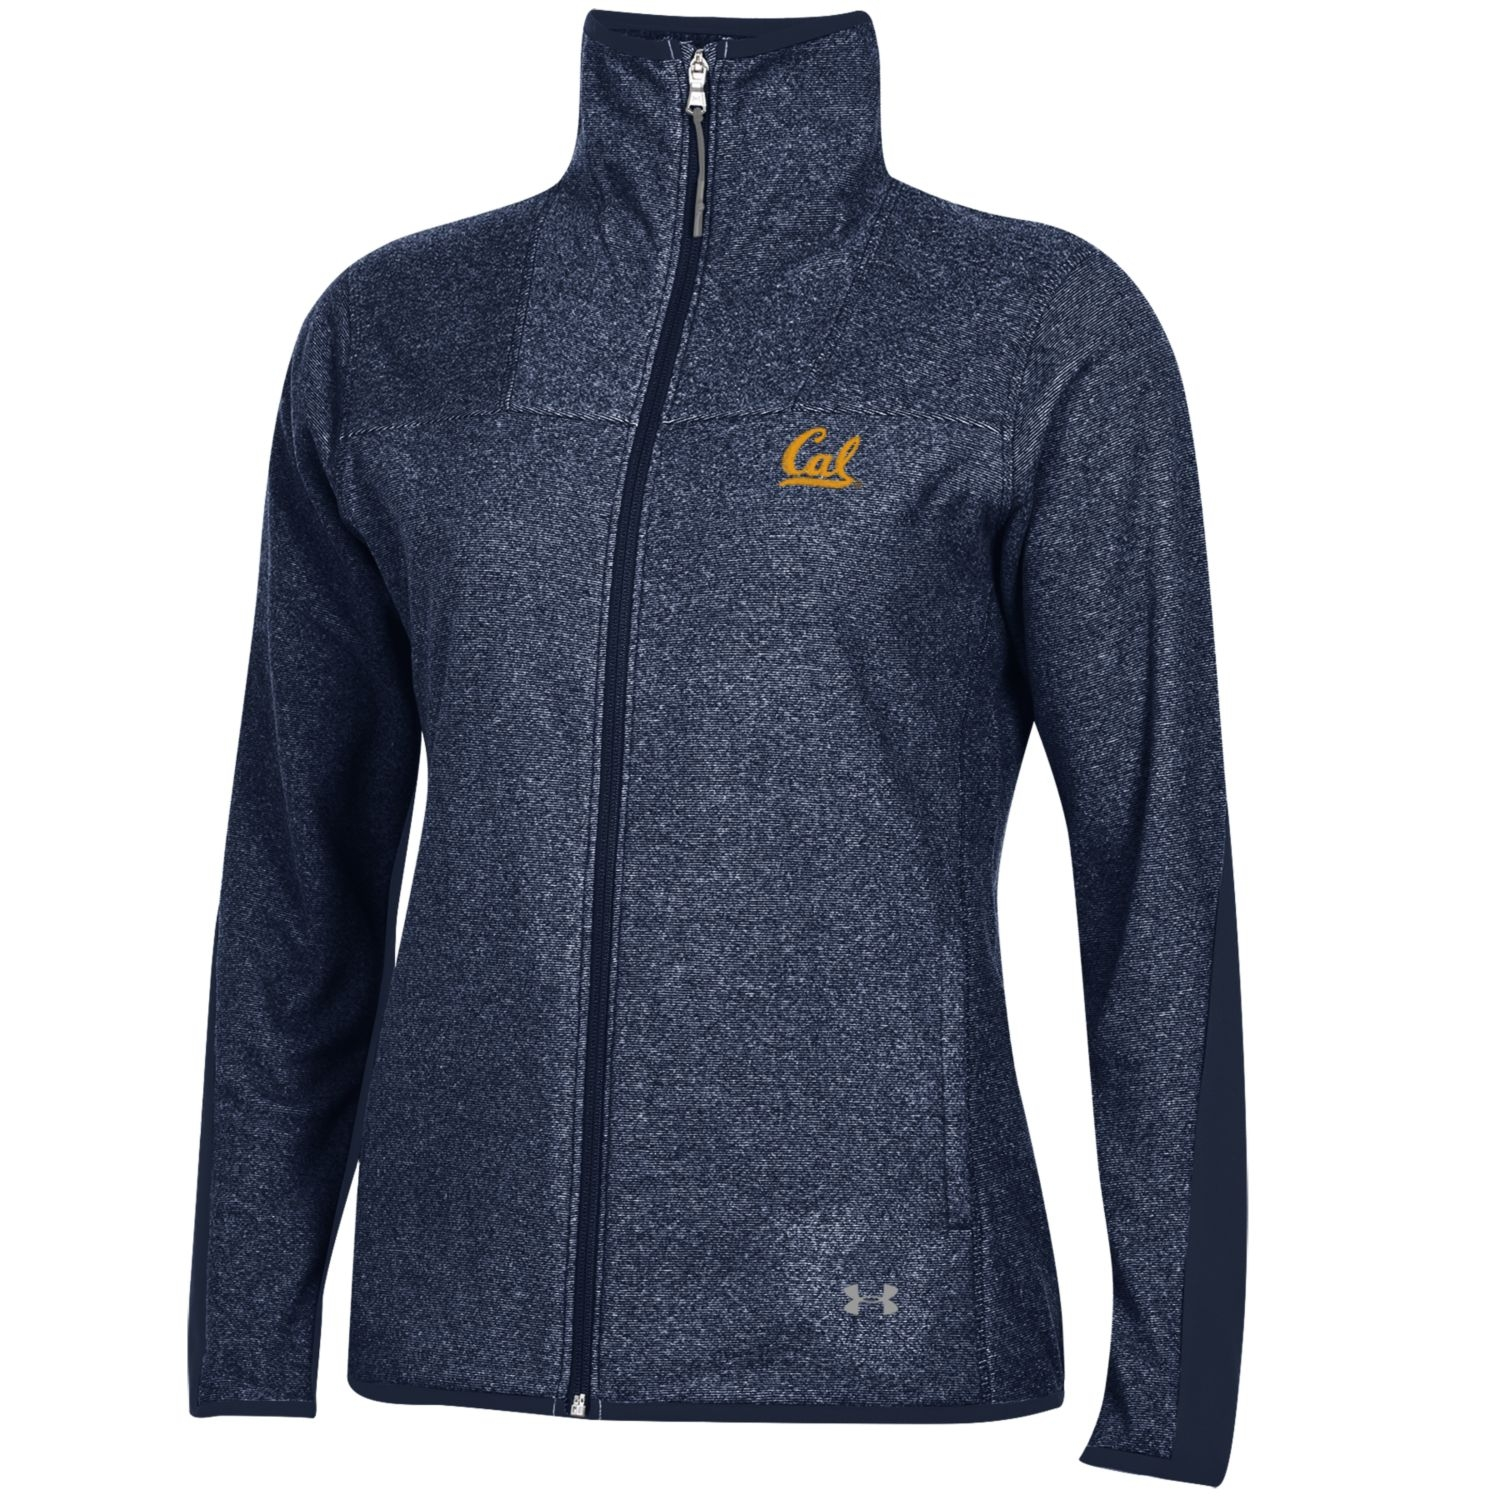 Cal Bears Under Armour Women's Survivor Fleece Jacket